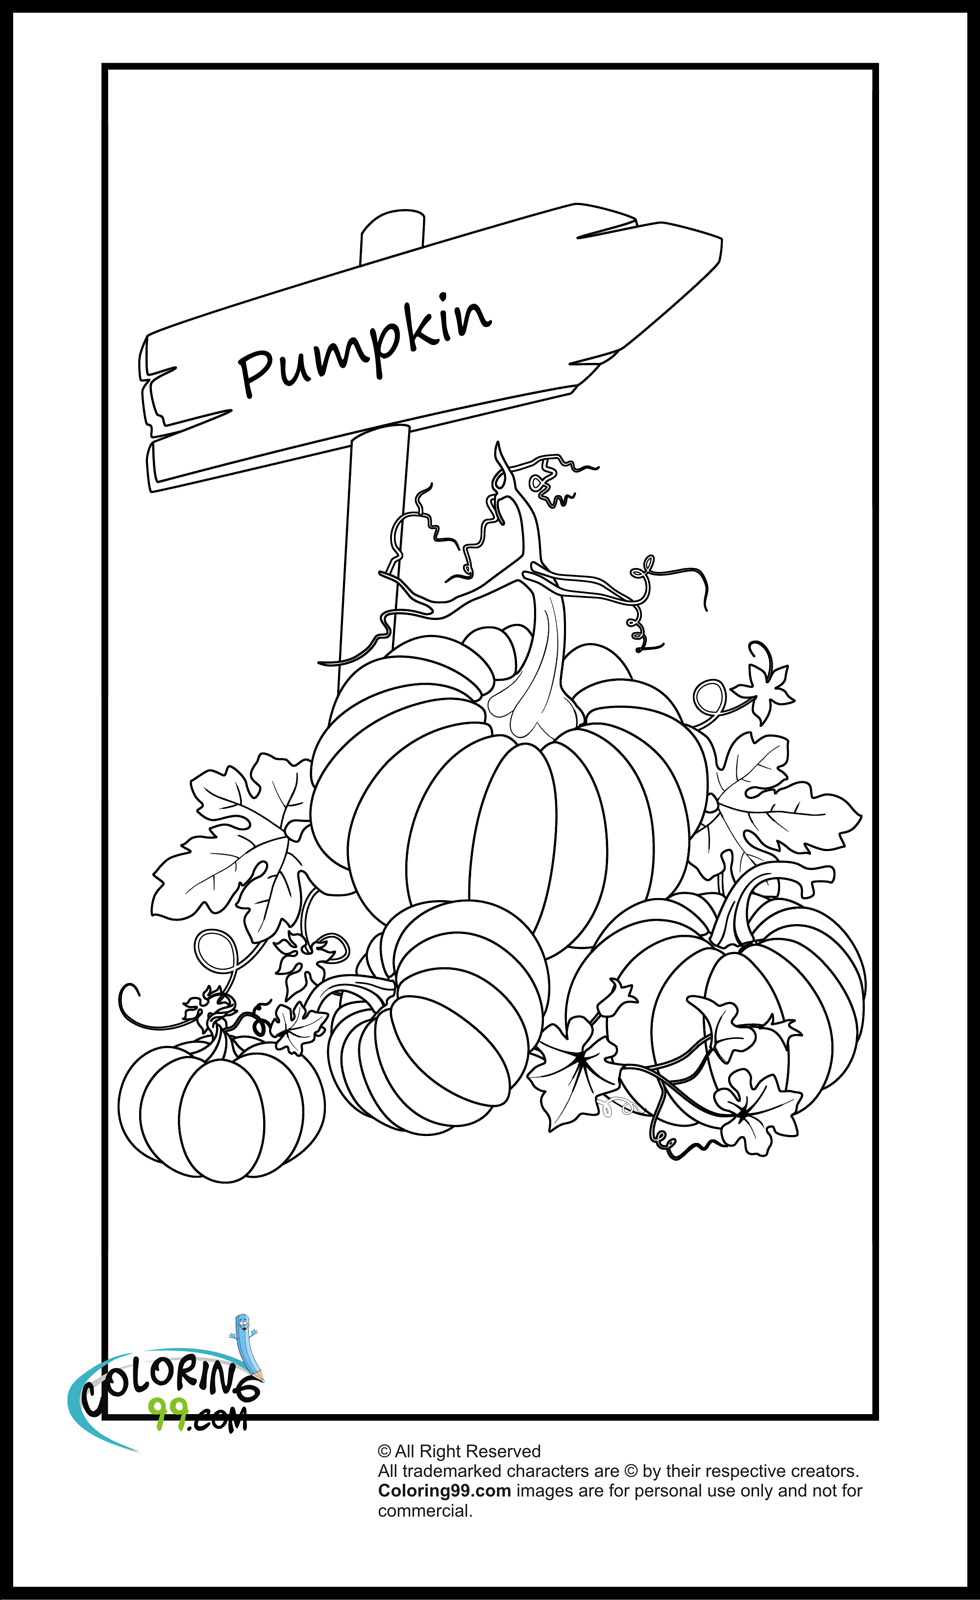 pumpking coloring pages get this pumpkin coloring pages for preschoolers 74027 pumpking coloring pages